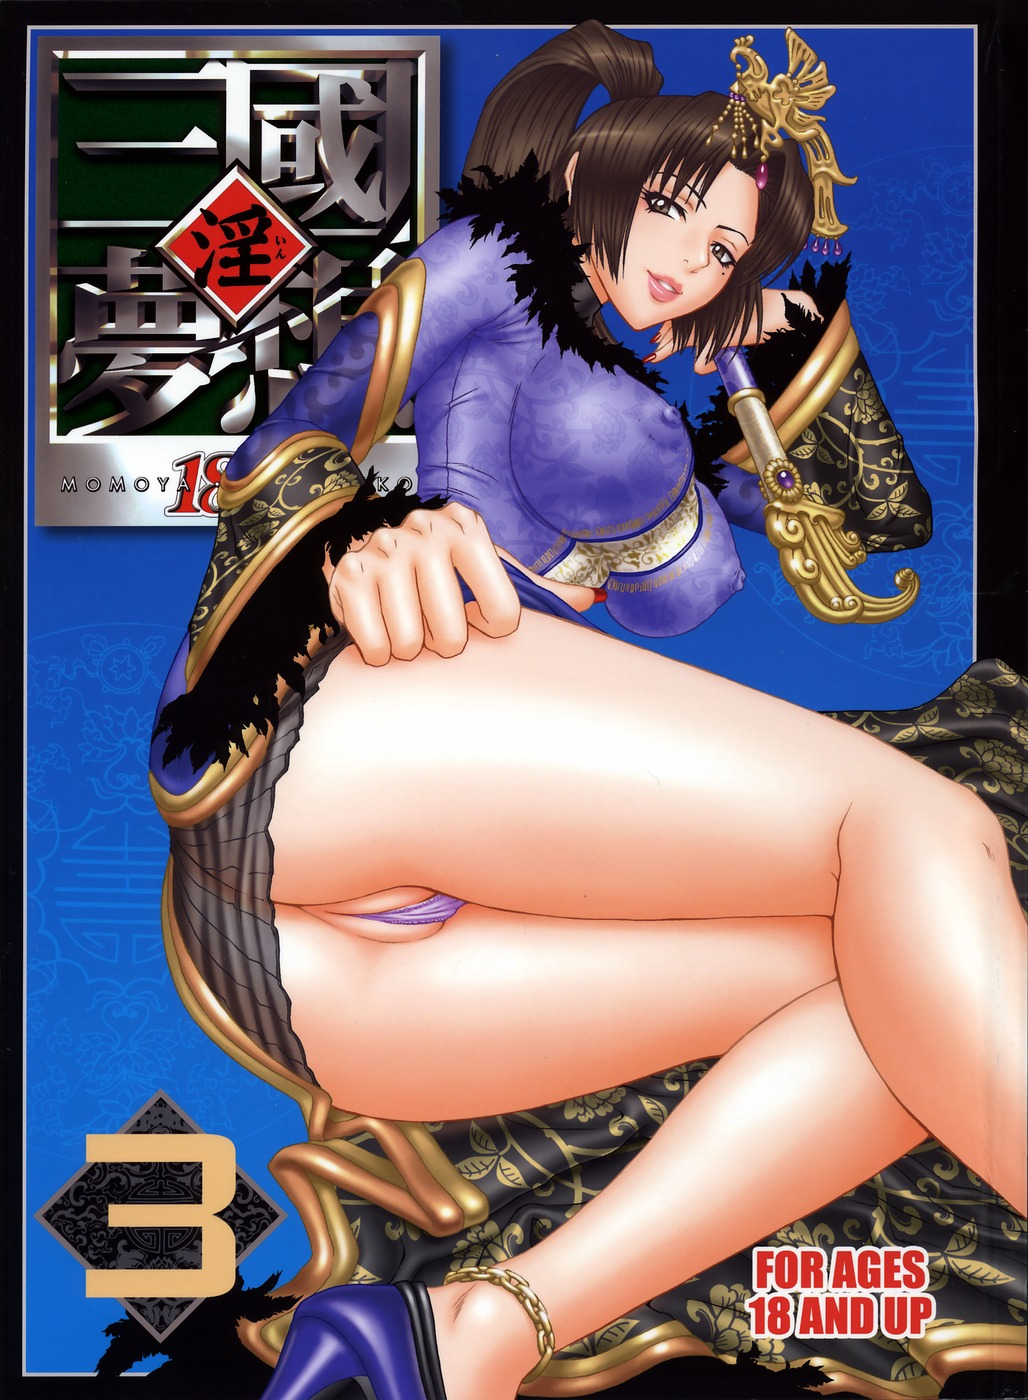 Dynasty warriors porn x hentia porncraft lady